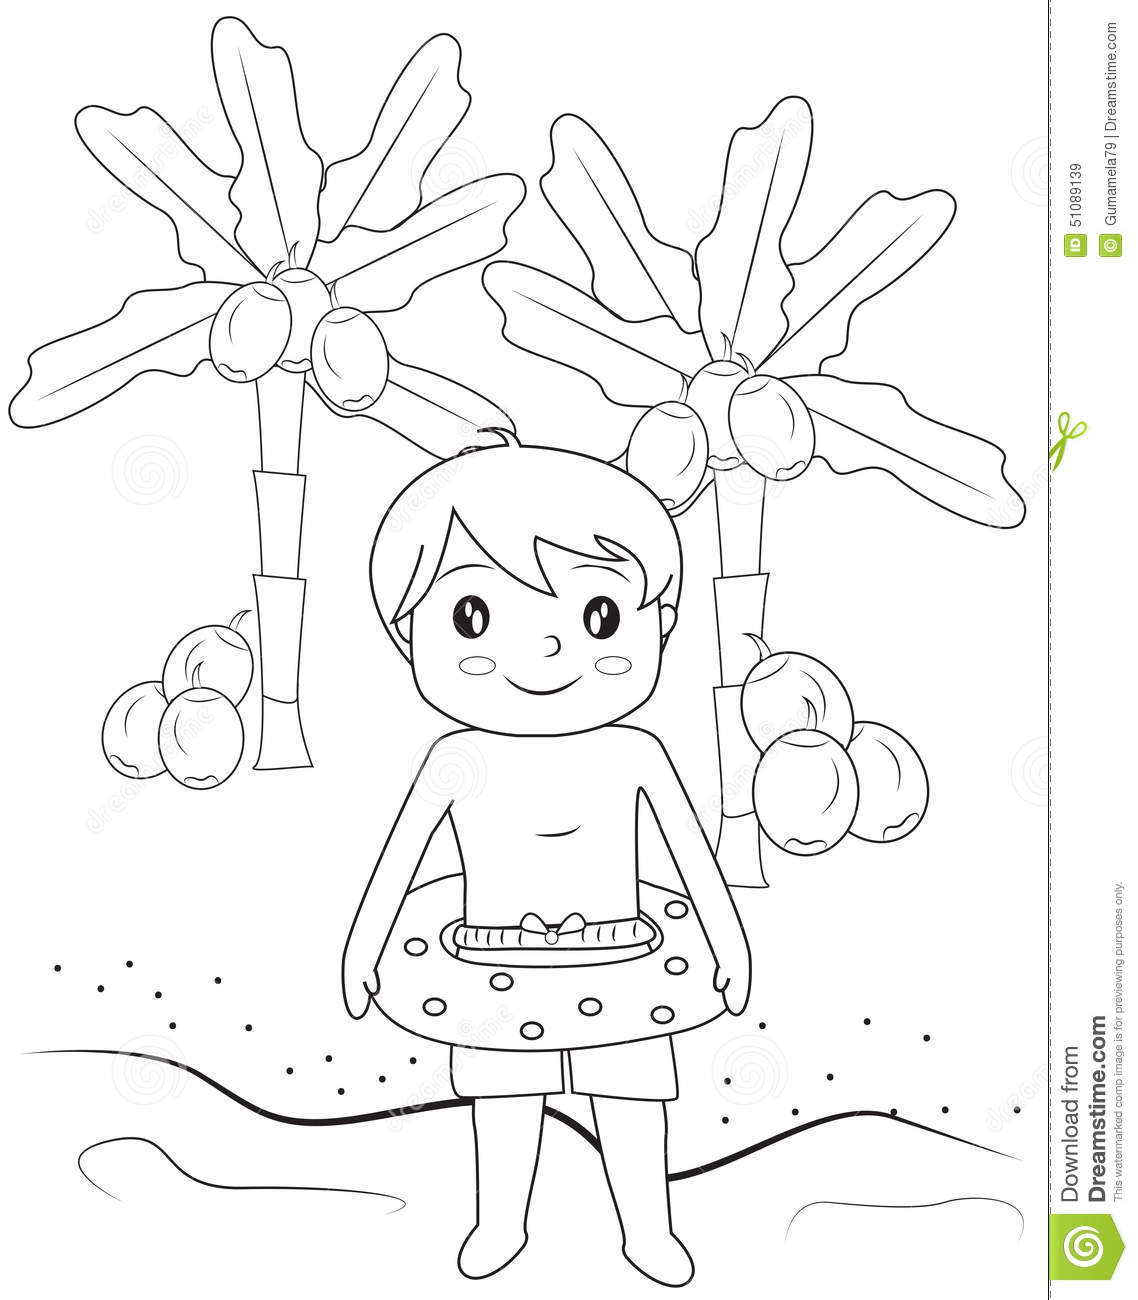 Boy In The Beach Coloring Page Stock Illustration - Illustration of ...